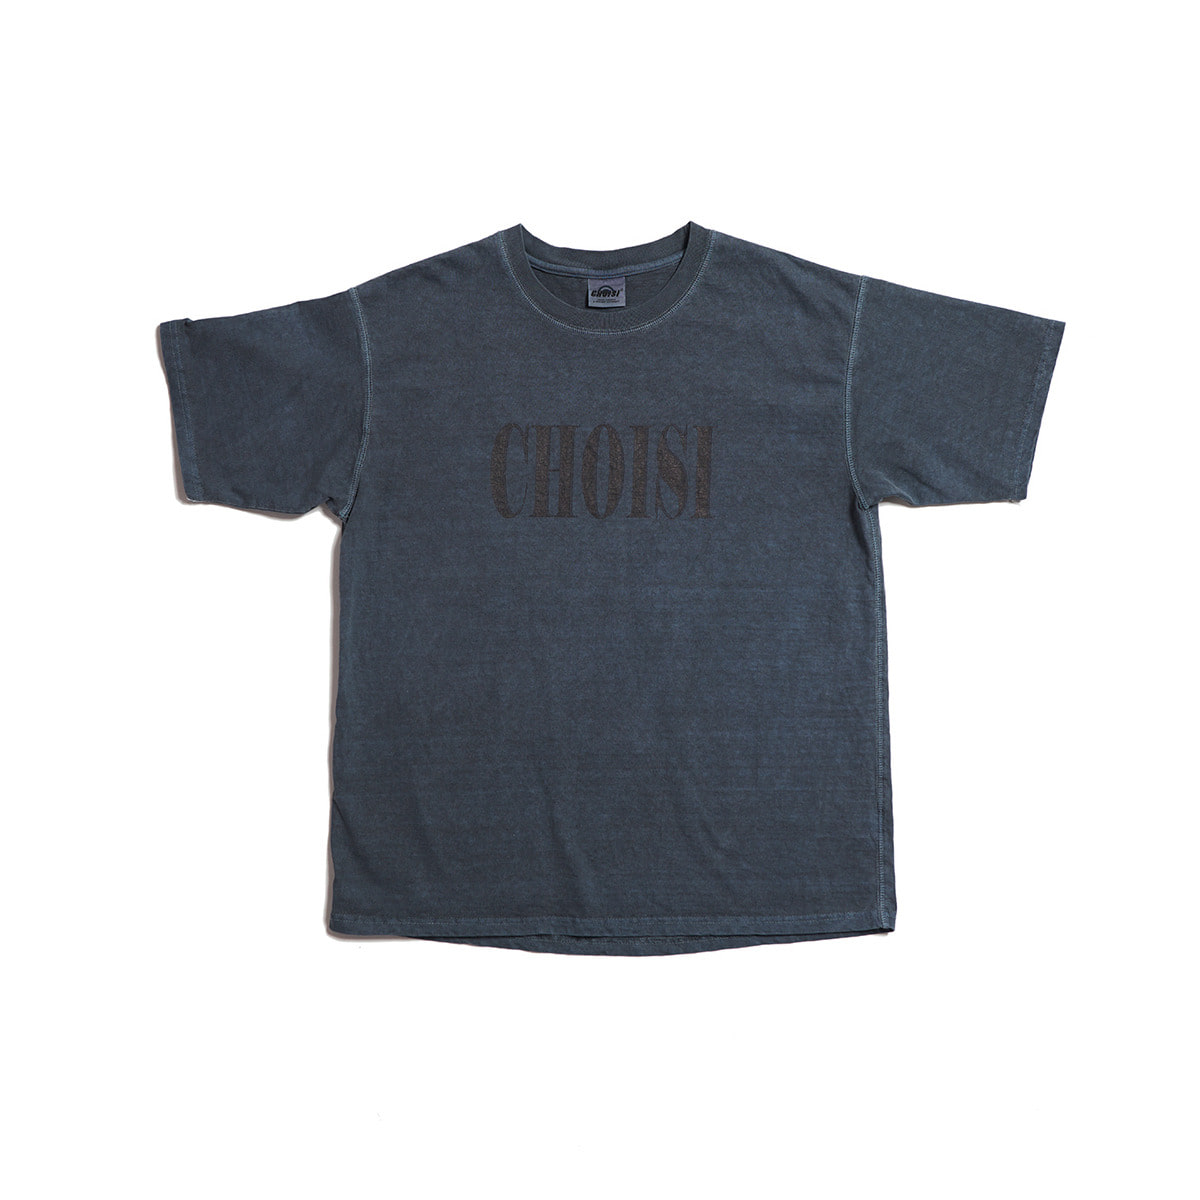 CHOISI Washing Short Sleeve, Navy